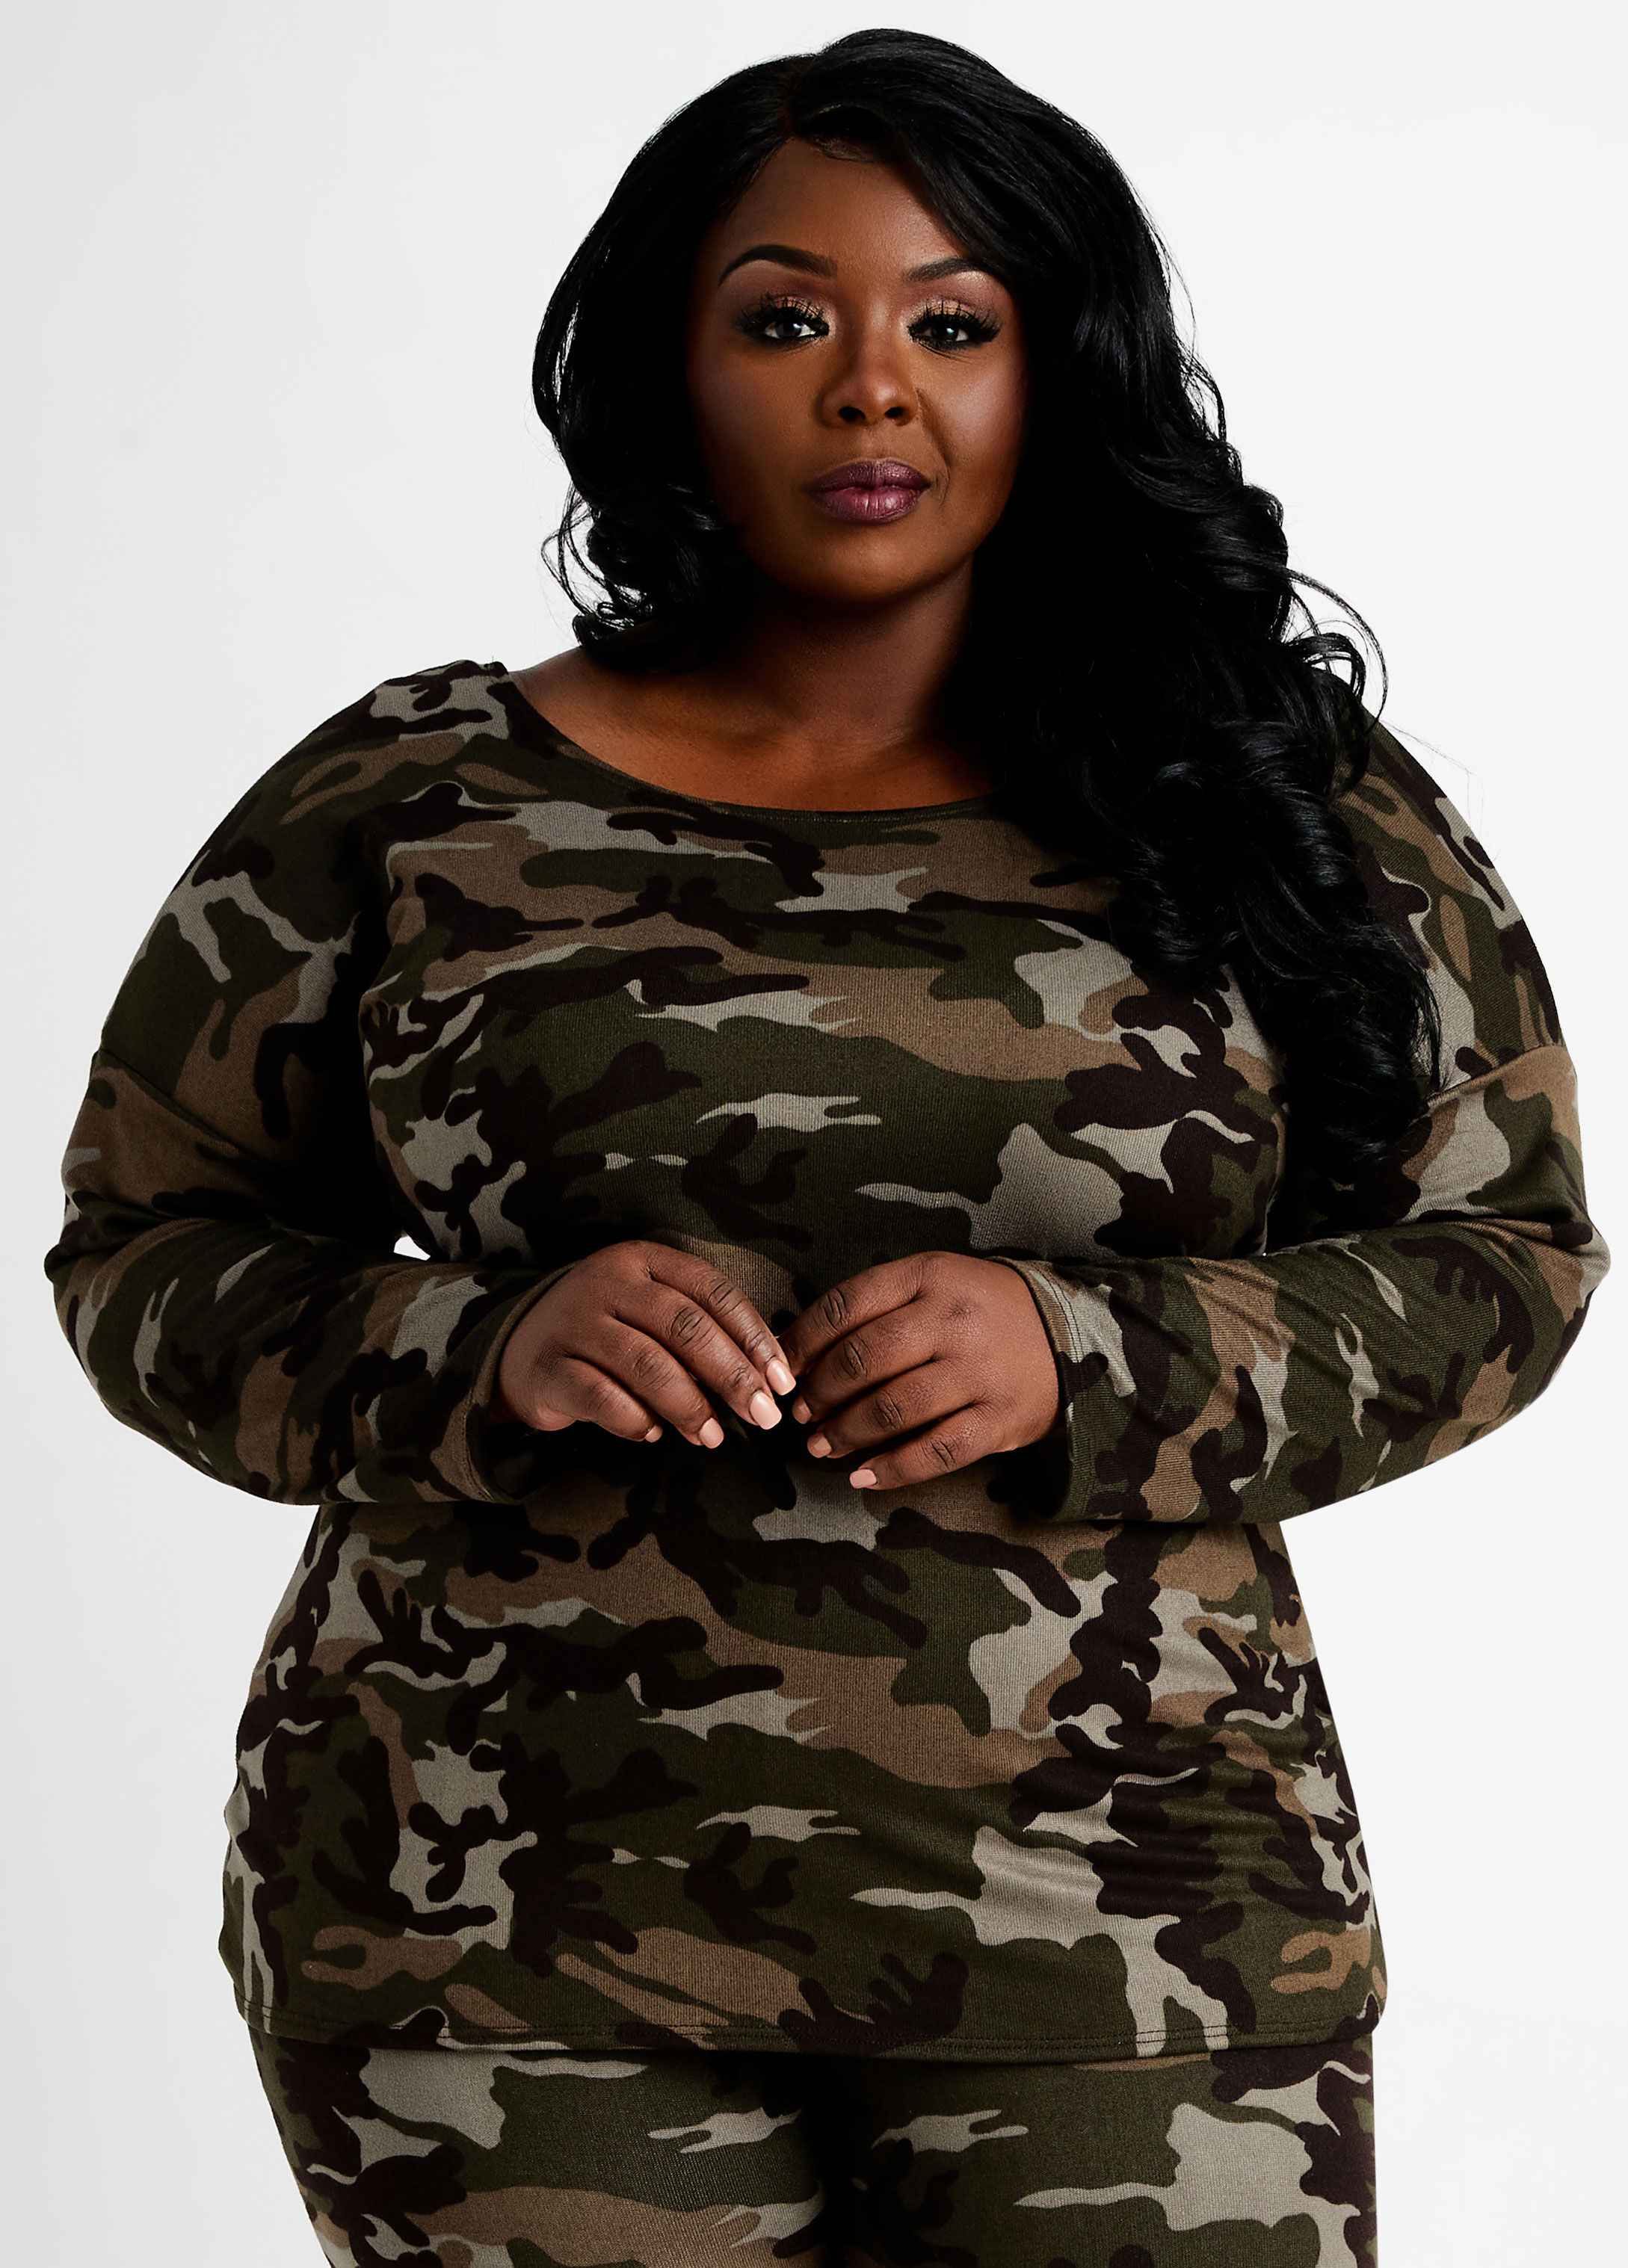 Cozy Lounge Camo Knot Back Top $20.70 @ Ashley Stewart